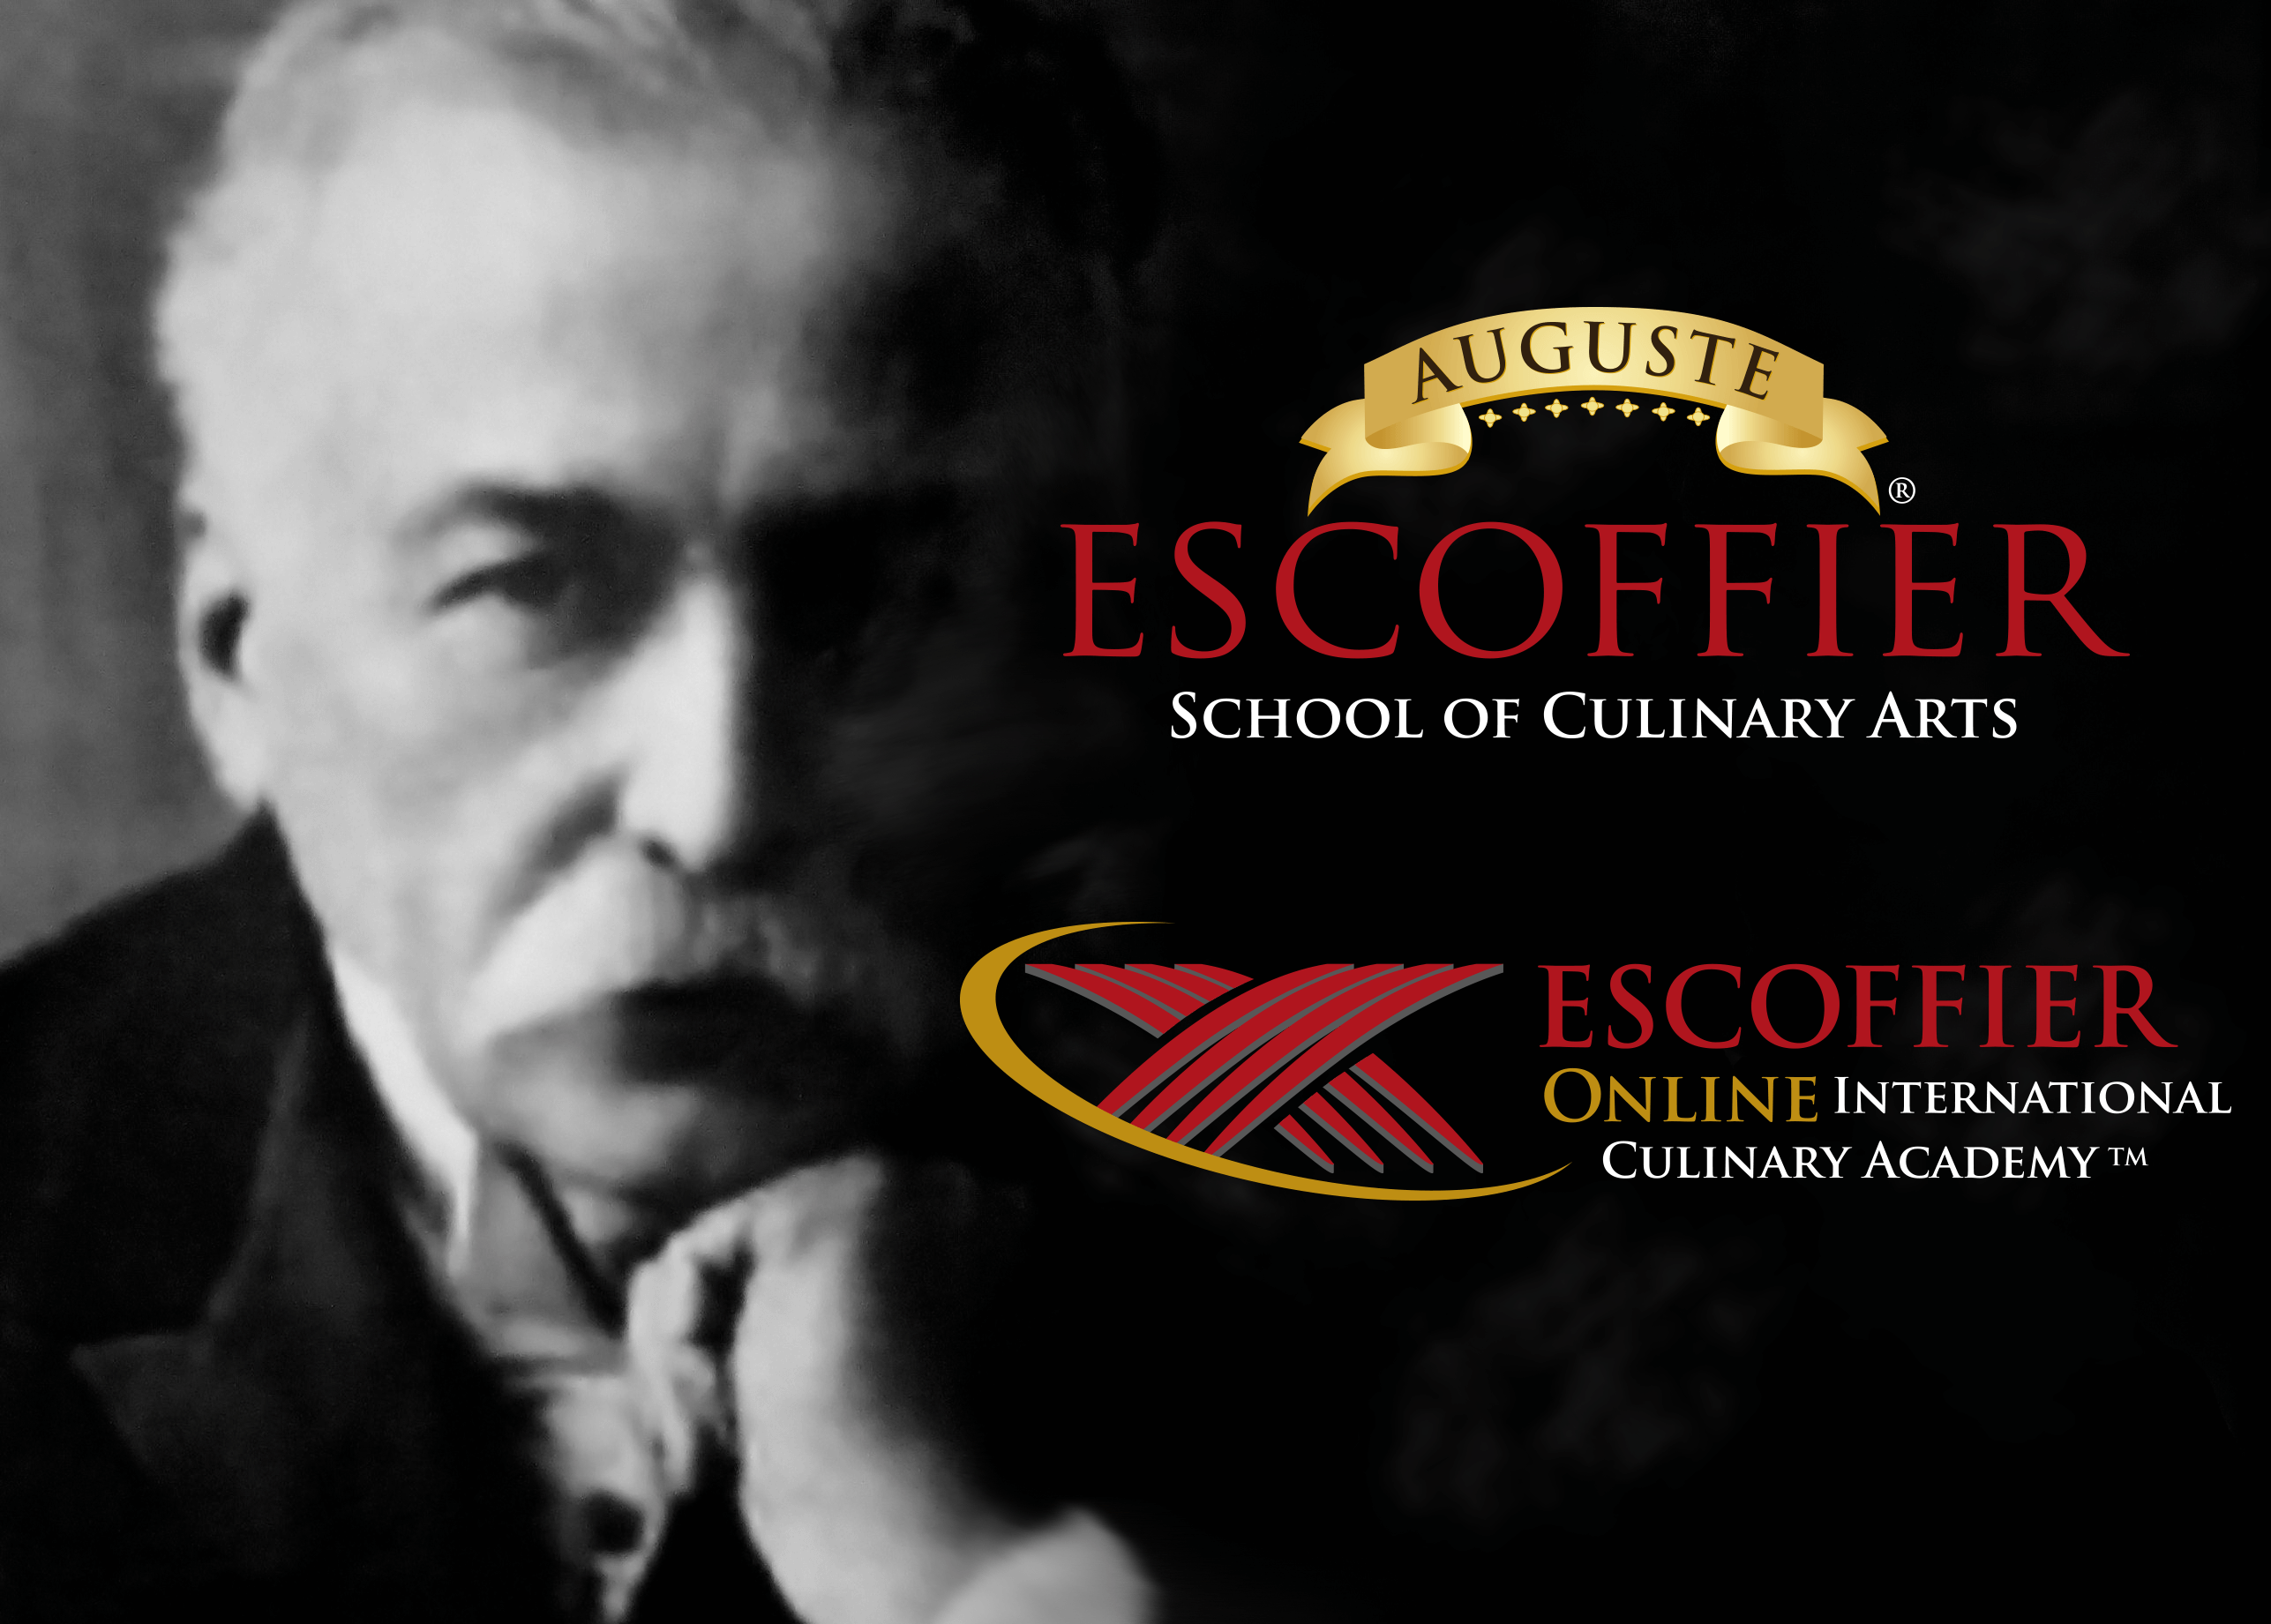 Escoffier Culinary Schools Bring Top Chefs To NYC